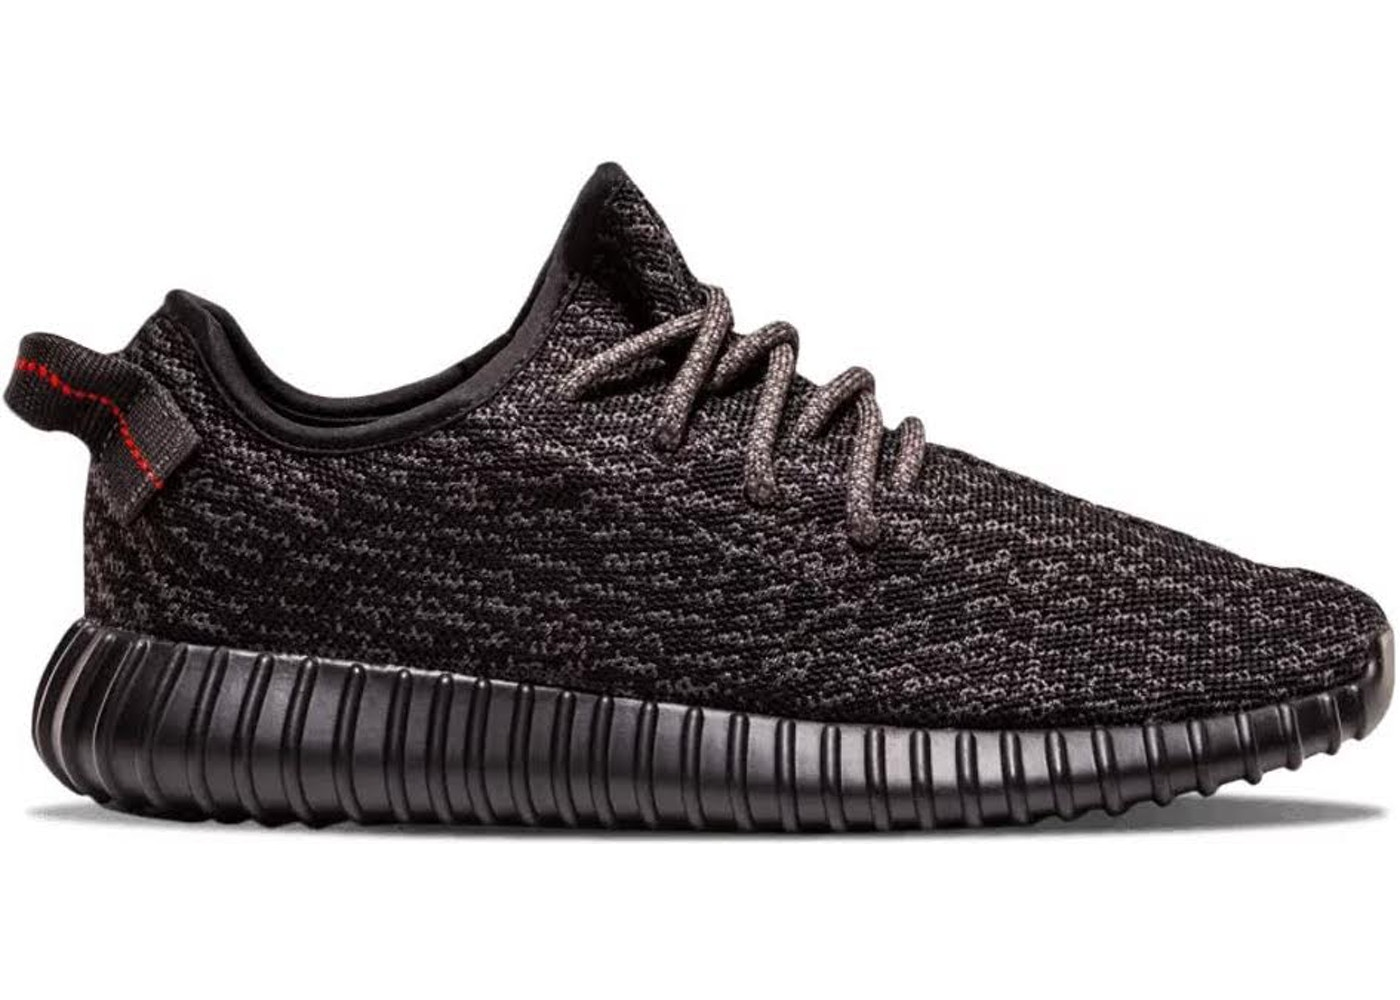 58ccdc7763eb adidas Yeezy Boost 350 Pirate Black (2015) - AQ2659